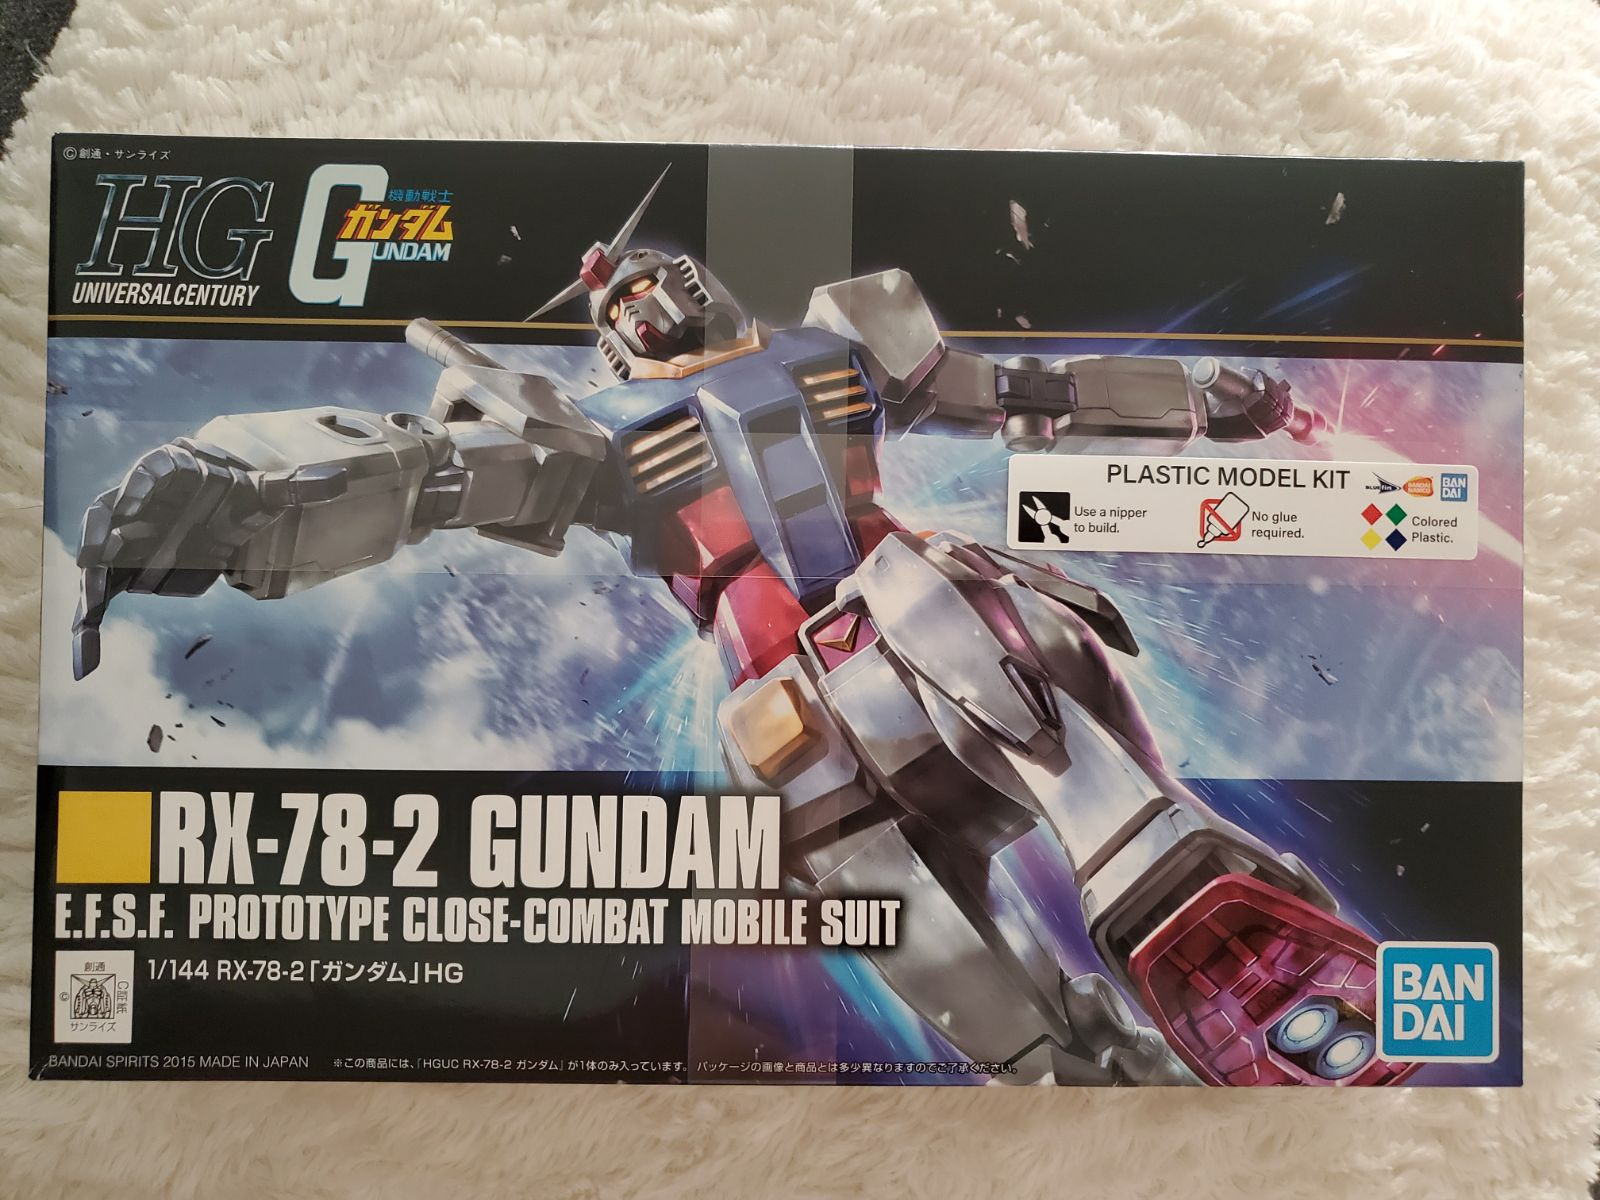 RX-78-2 GUNDAM,plastic model kit